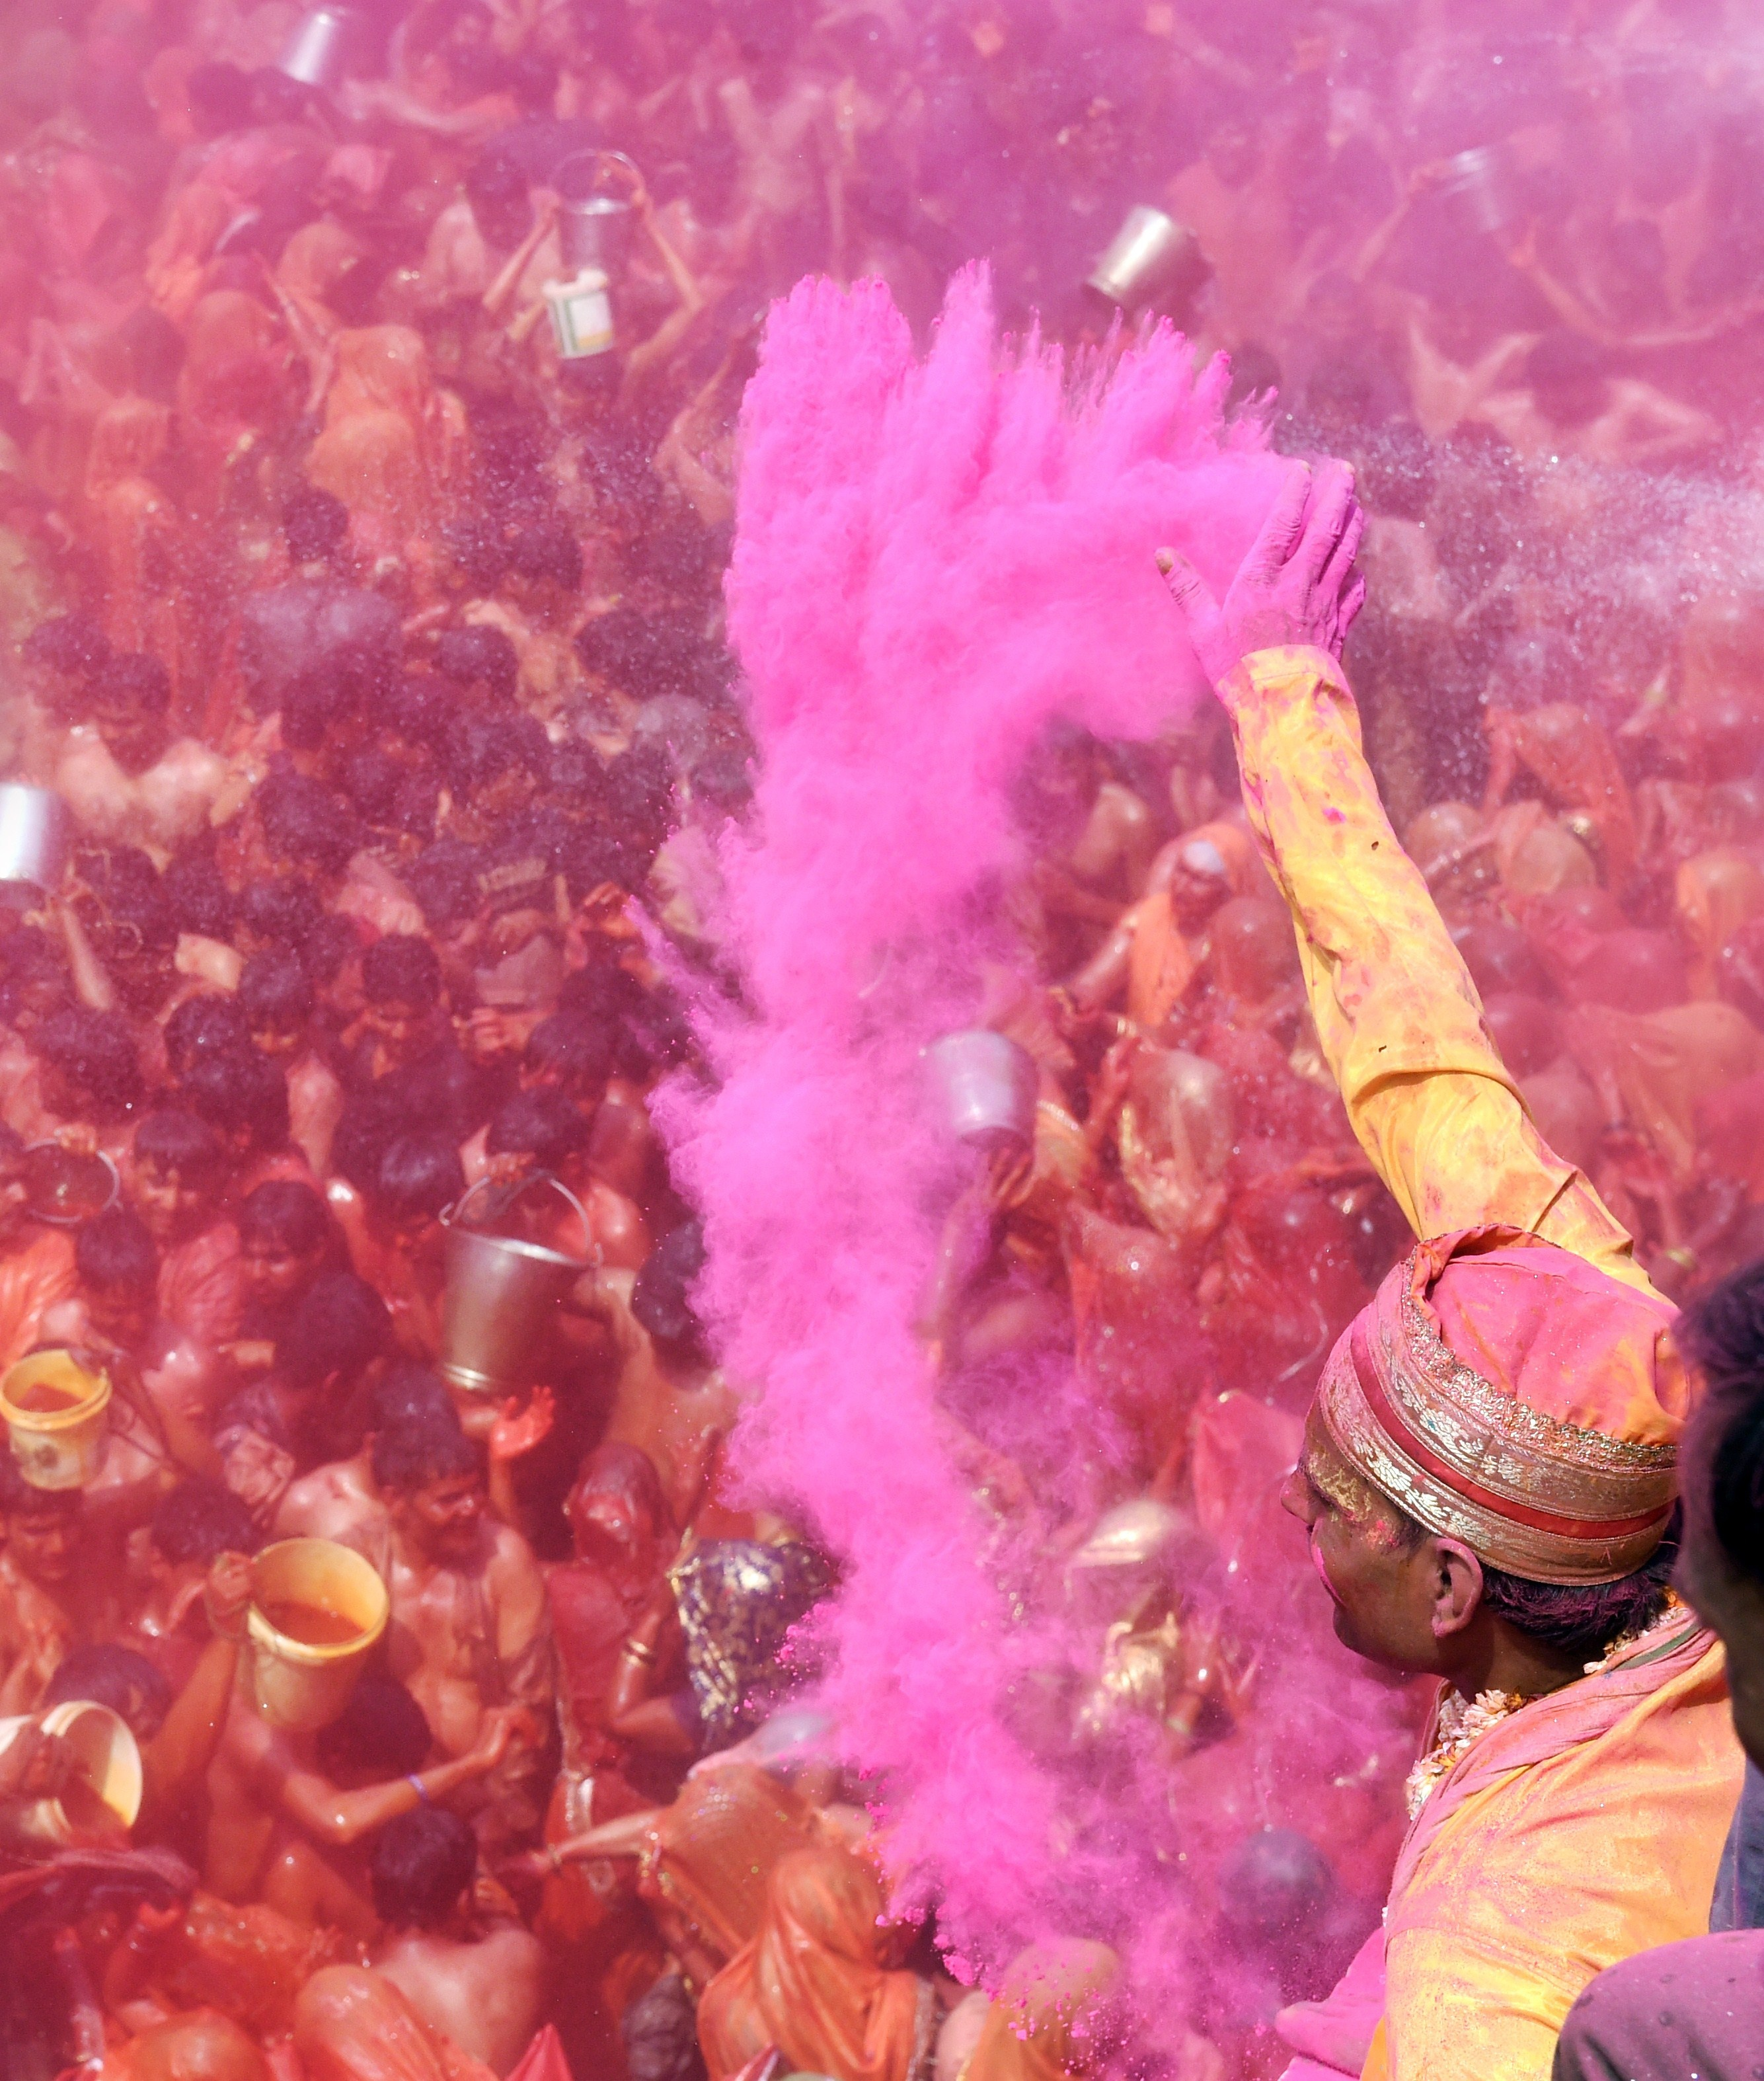 An Indian man throws colored powder on a crowd of revelers during the Dadjee ka Huranga festivities in the north Indian town of Baldeo on March 7, 2015. Photo by ROBERTO SCHMIDT/AFP/Getty Images.